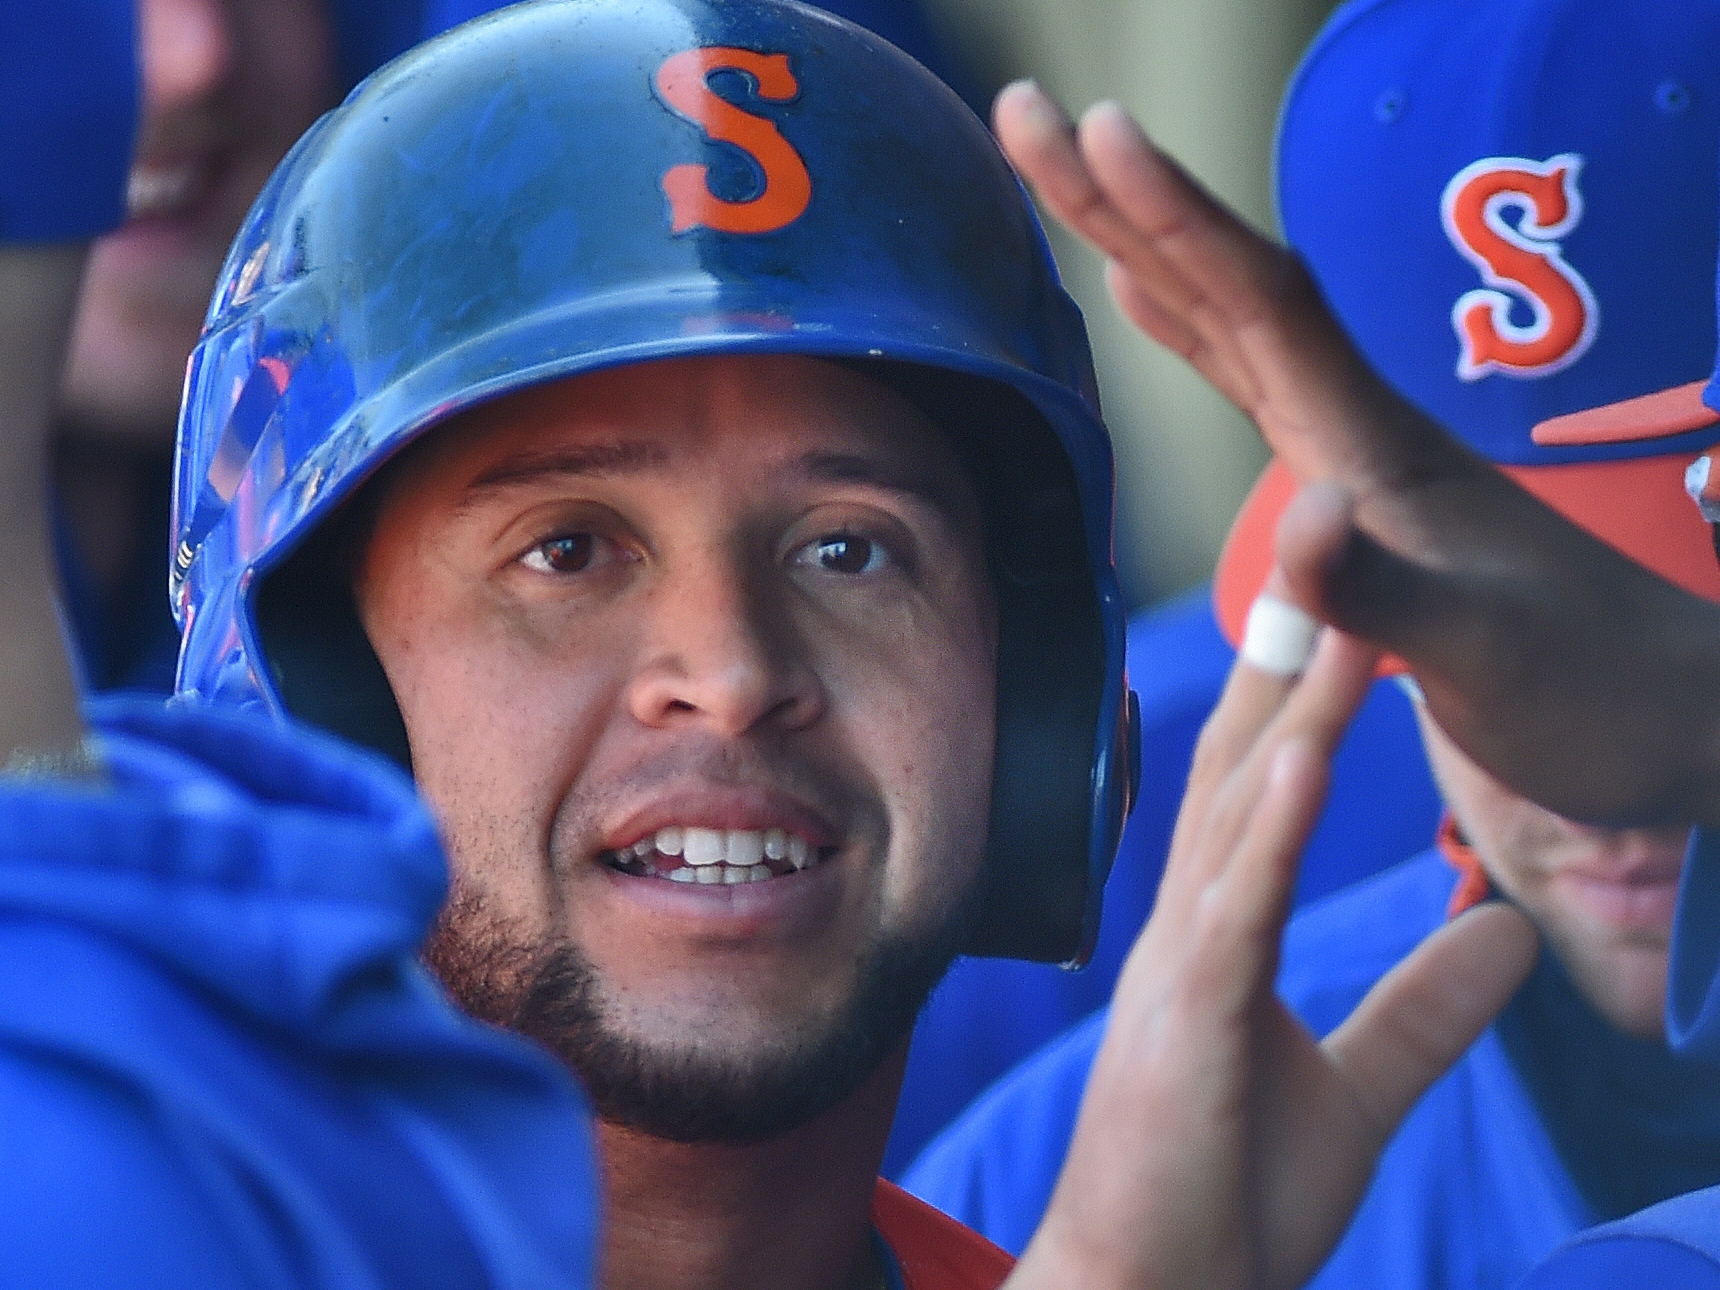 New York Mets went big-time in Syracuse debut: 'It was just a magical season'